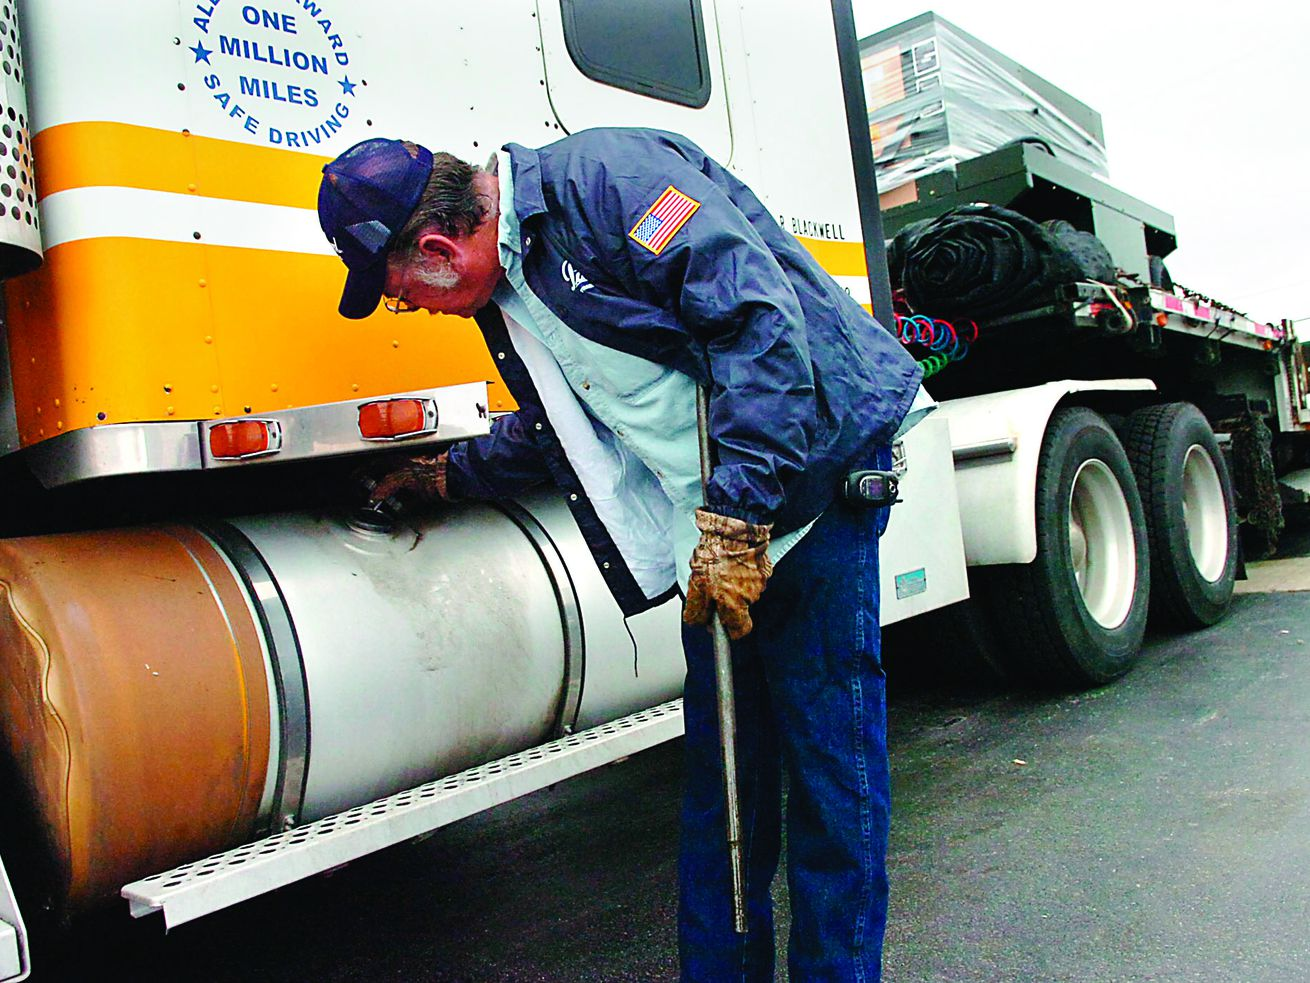 A driver checks the gas level in one of two 150-gallon tanks on his diesel semi-truck in this file photo from 2008.